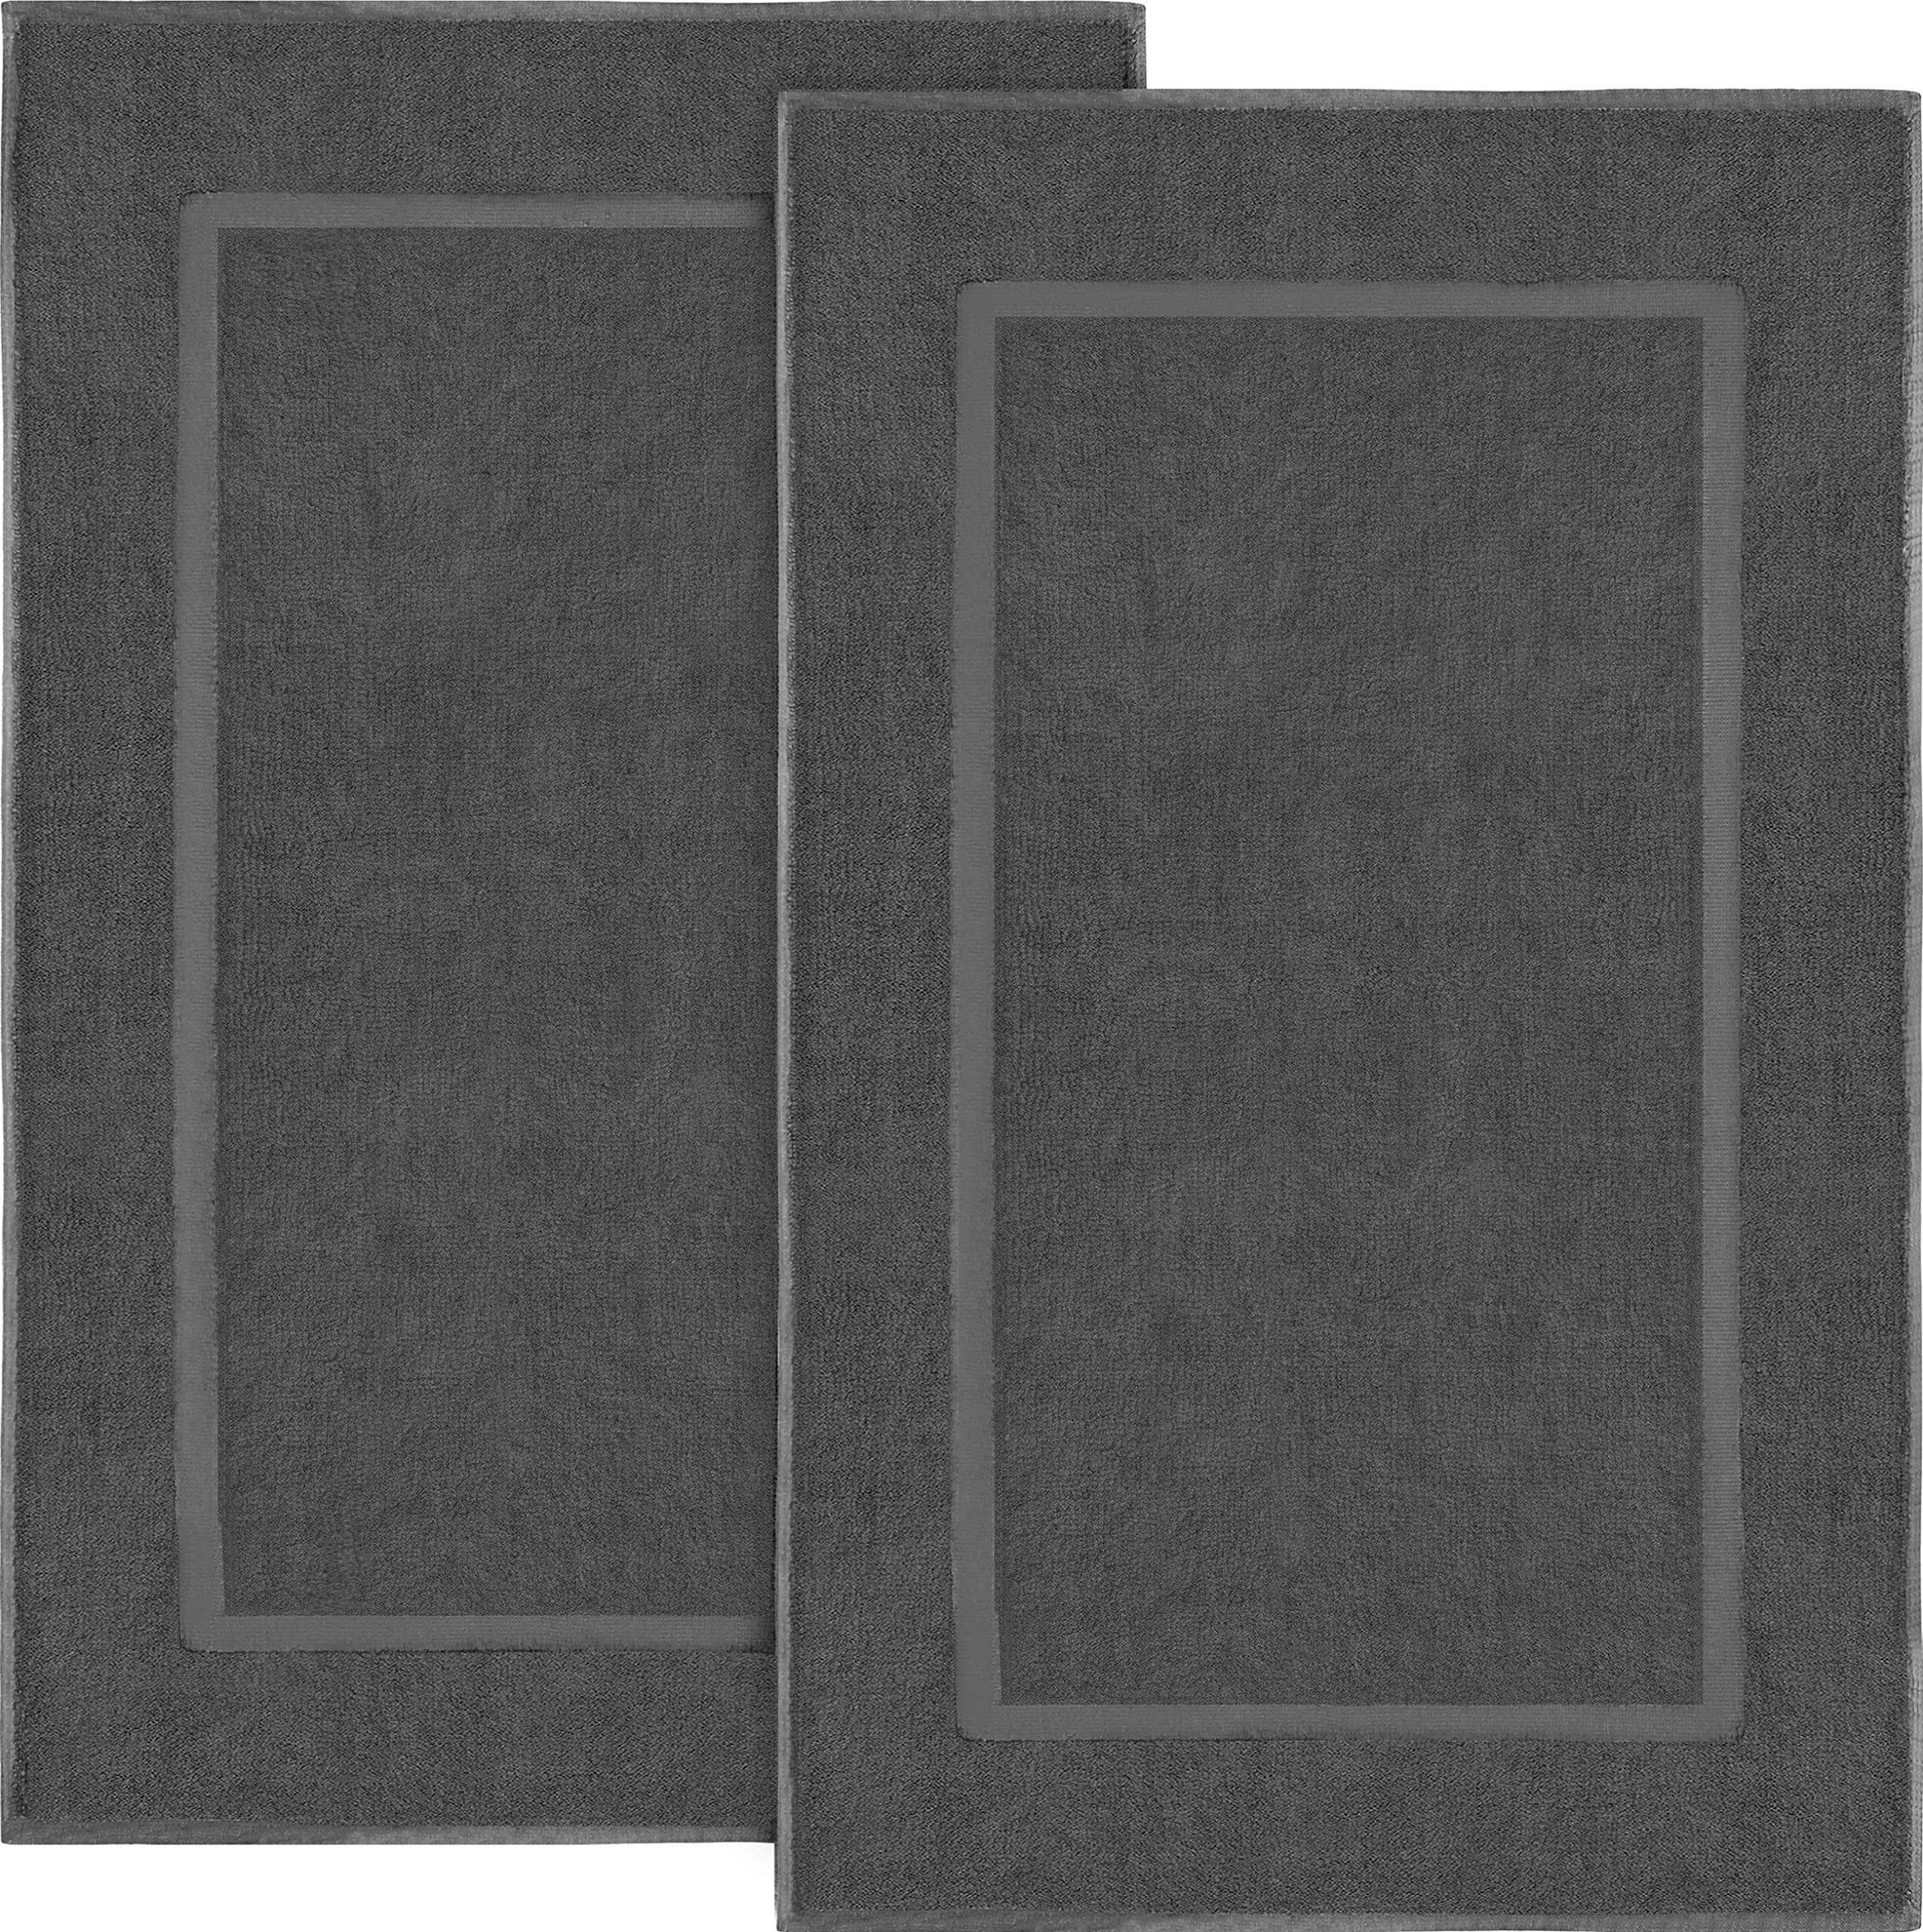 Utopia Towels Cotton Banded Bath Mats 2 Pack (21 x 34 inches), Dark Grey by Utopia Towels